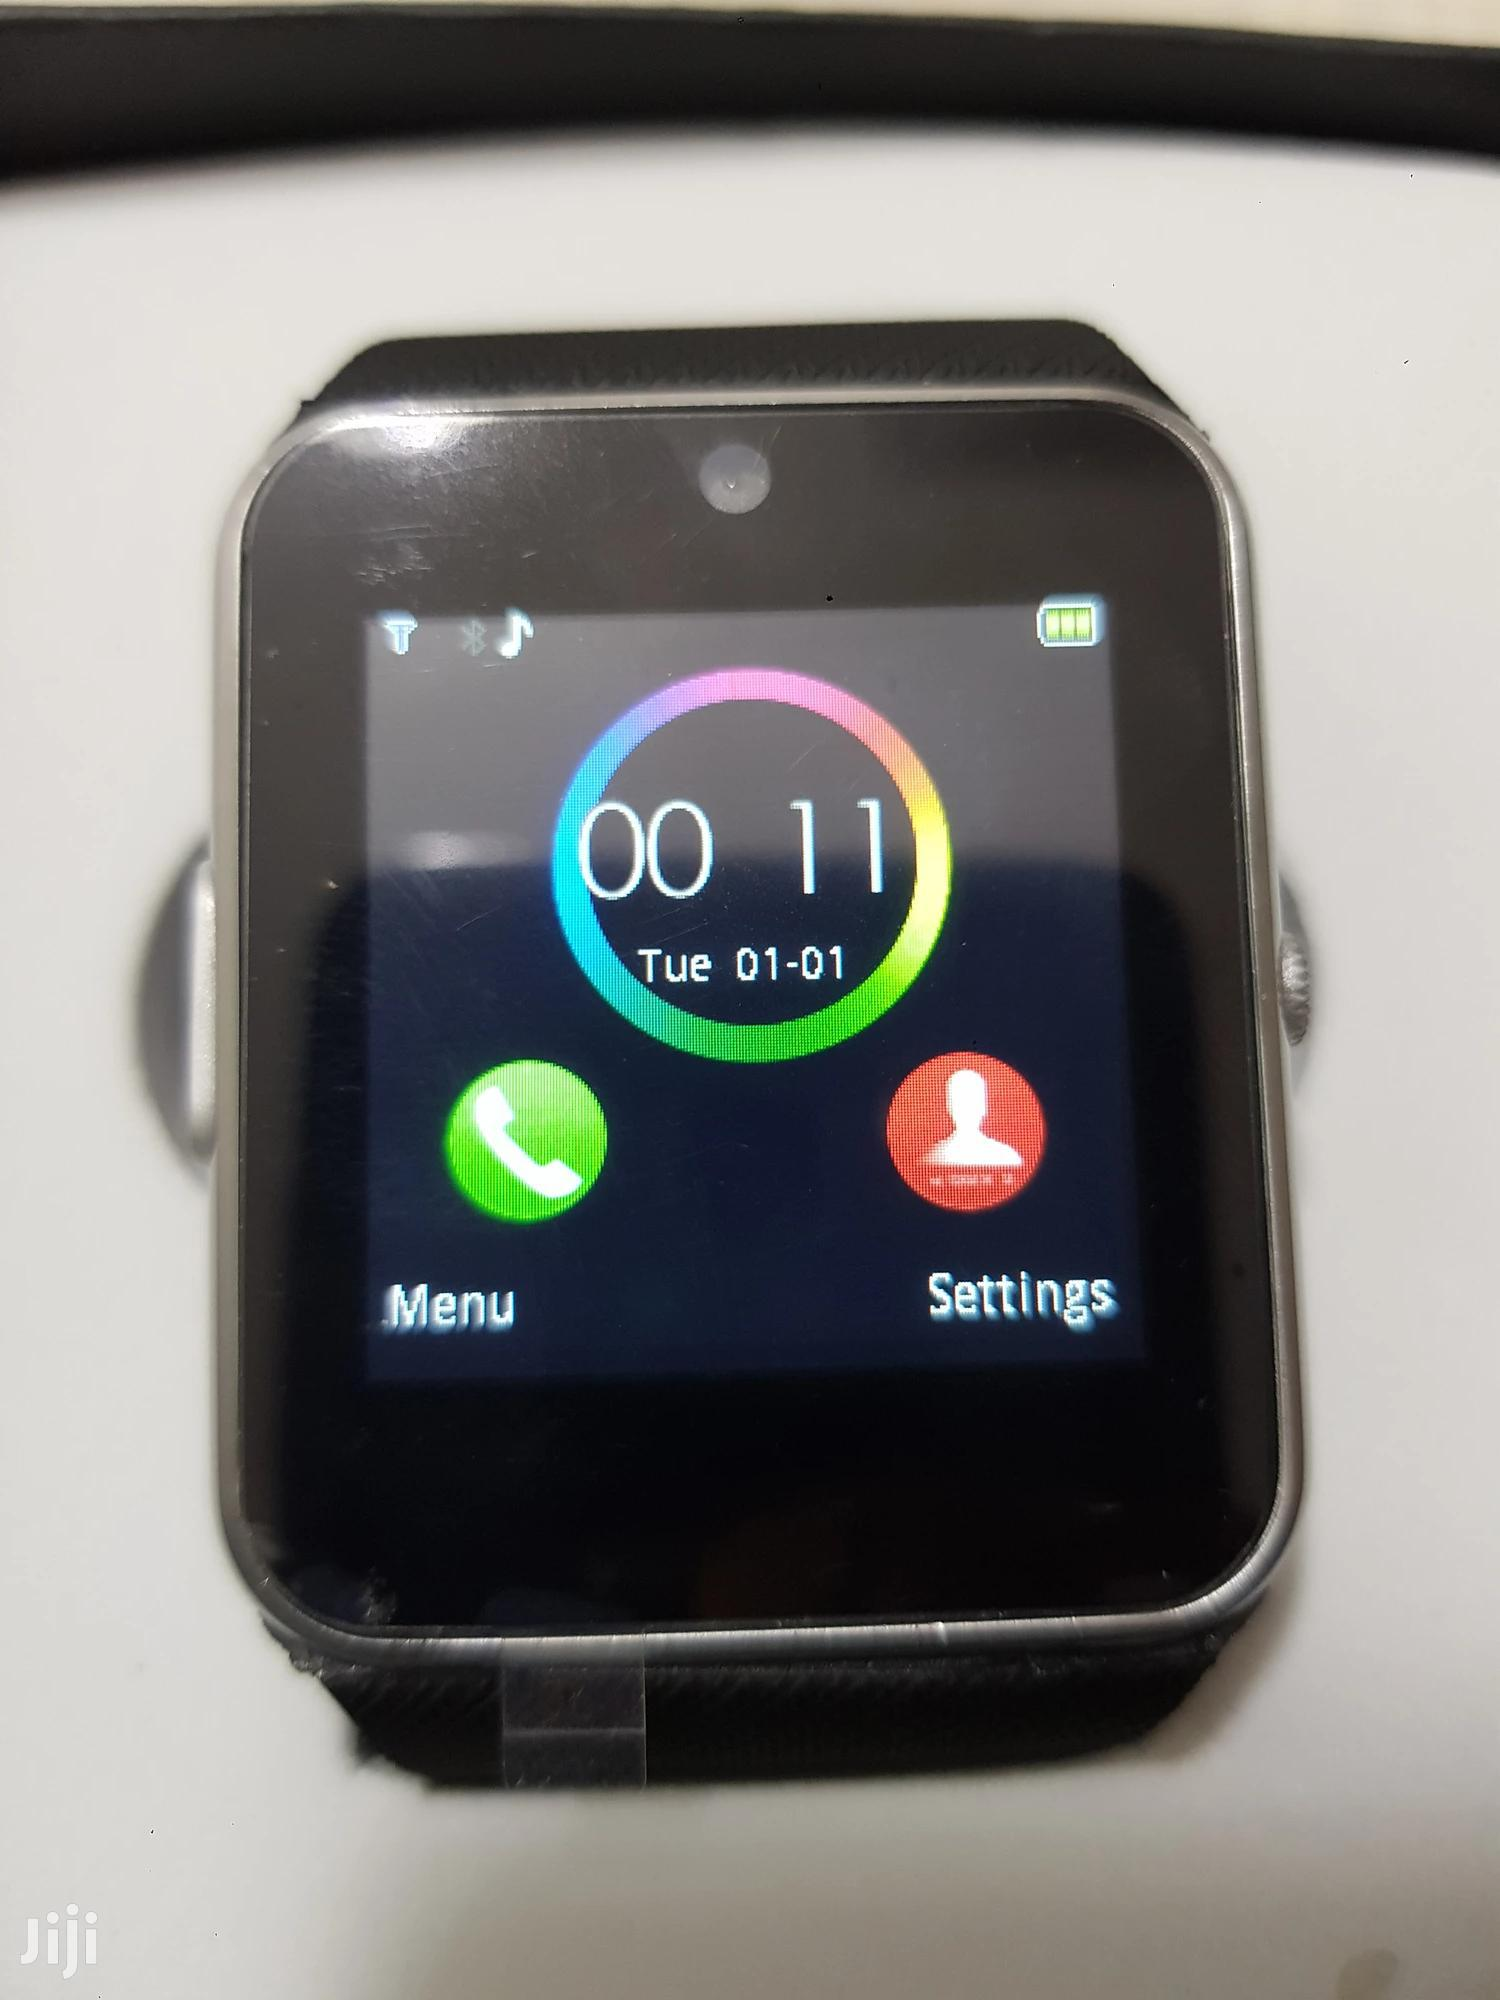 Archive: Android Blutooth +Sim Card Mobile Phone Watch